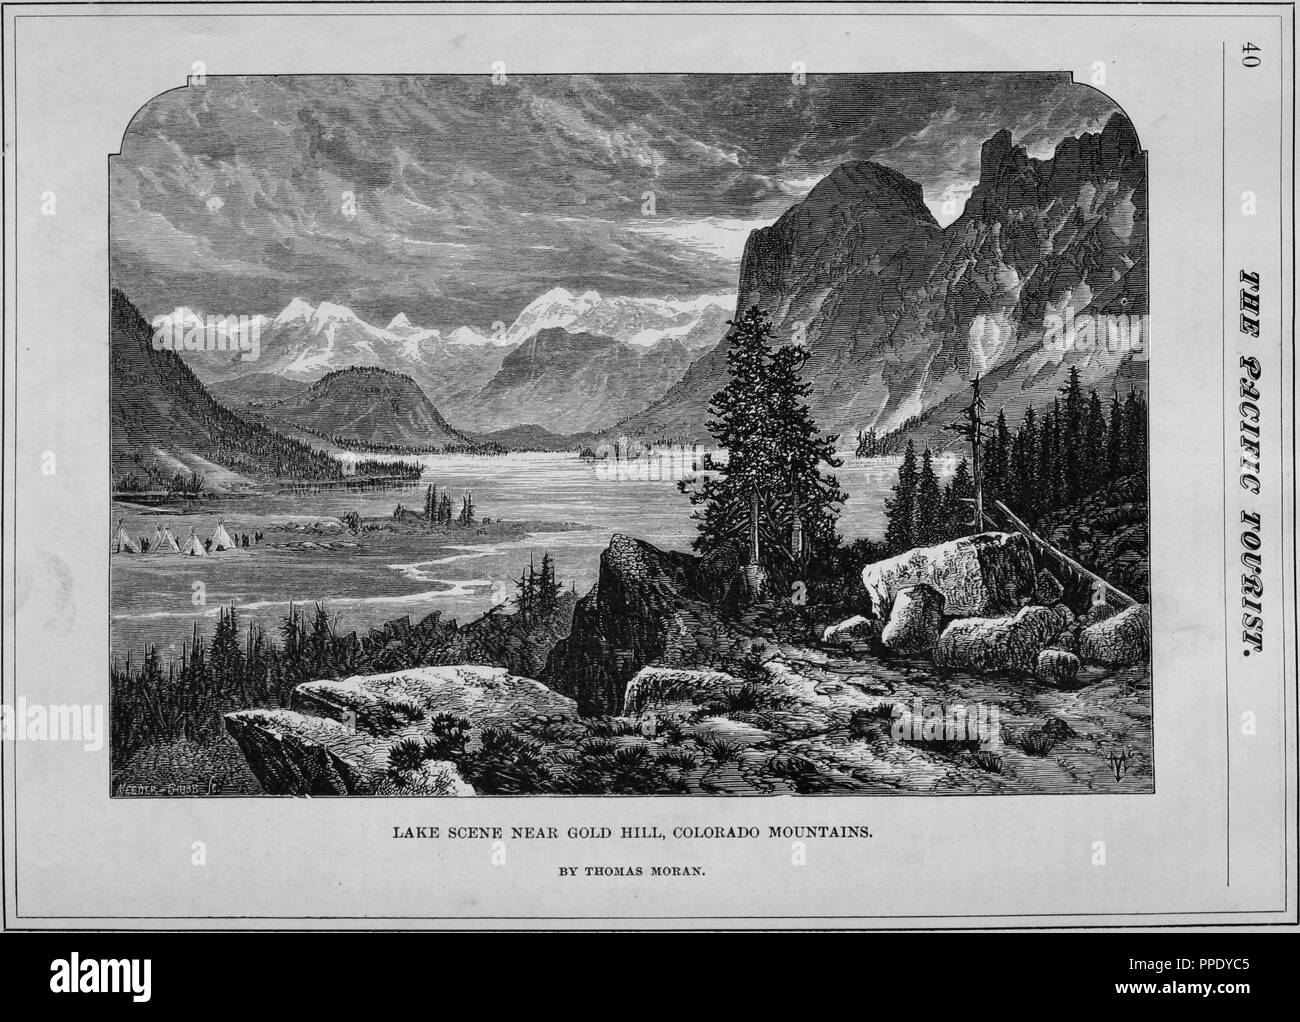 Engraving of a lake near Gold Hill, Colorado Mountains, from the book 'The Pacific tourist', Boulder County, Colorado, 1877. Courtesy Internet Archive. () - Stock Image